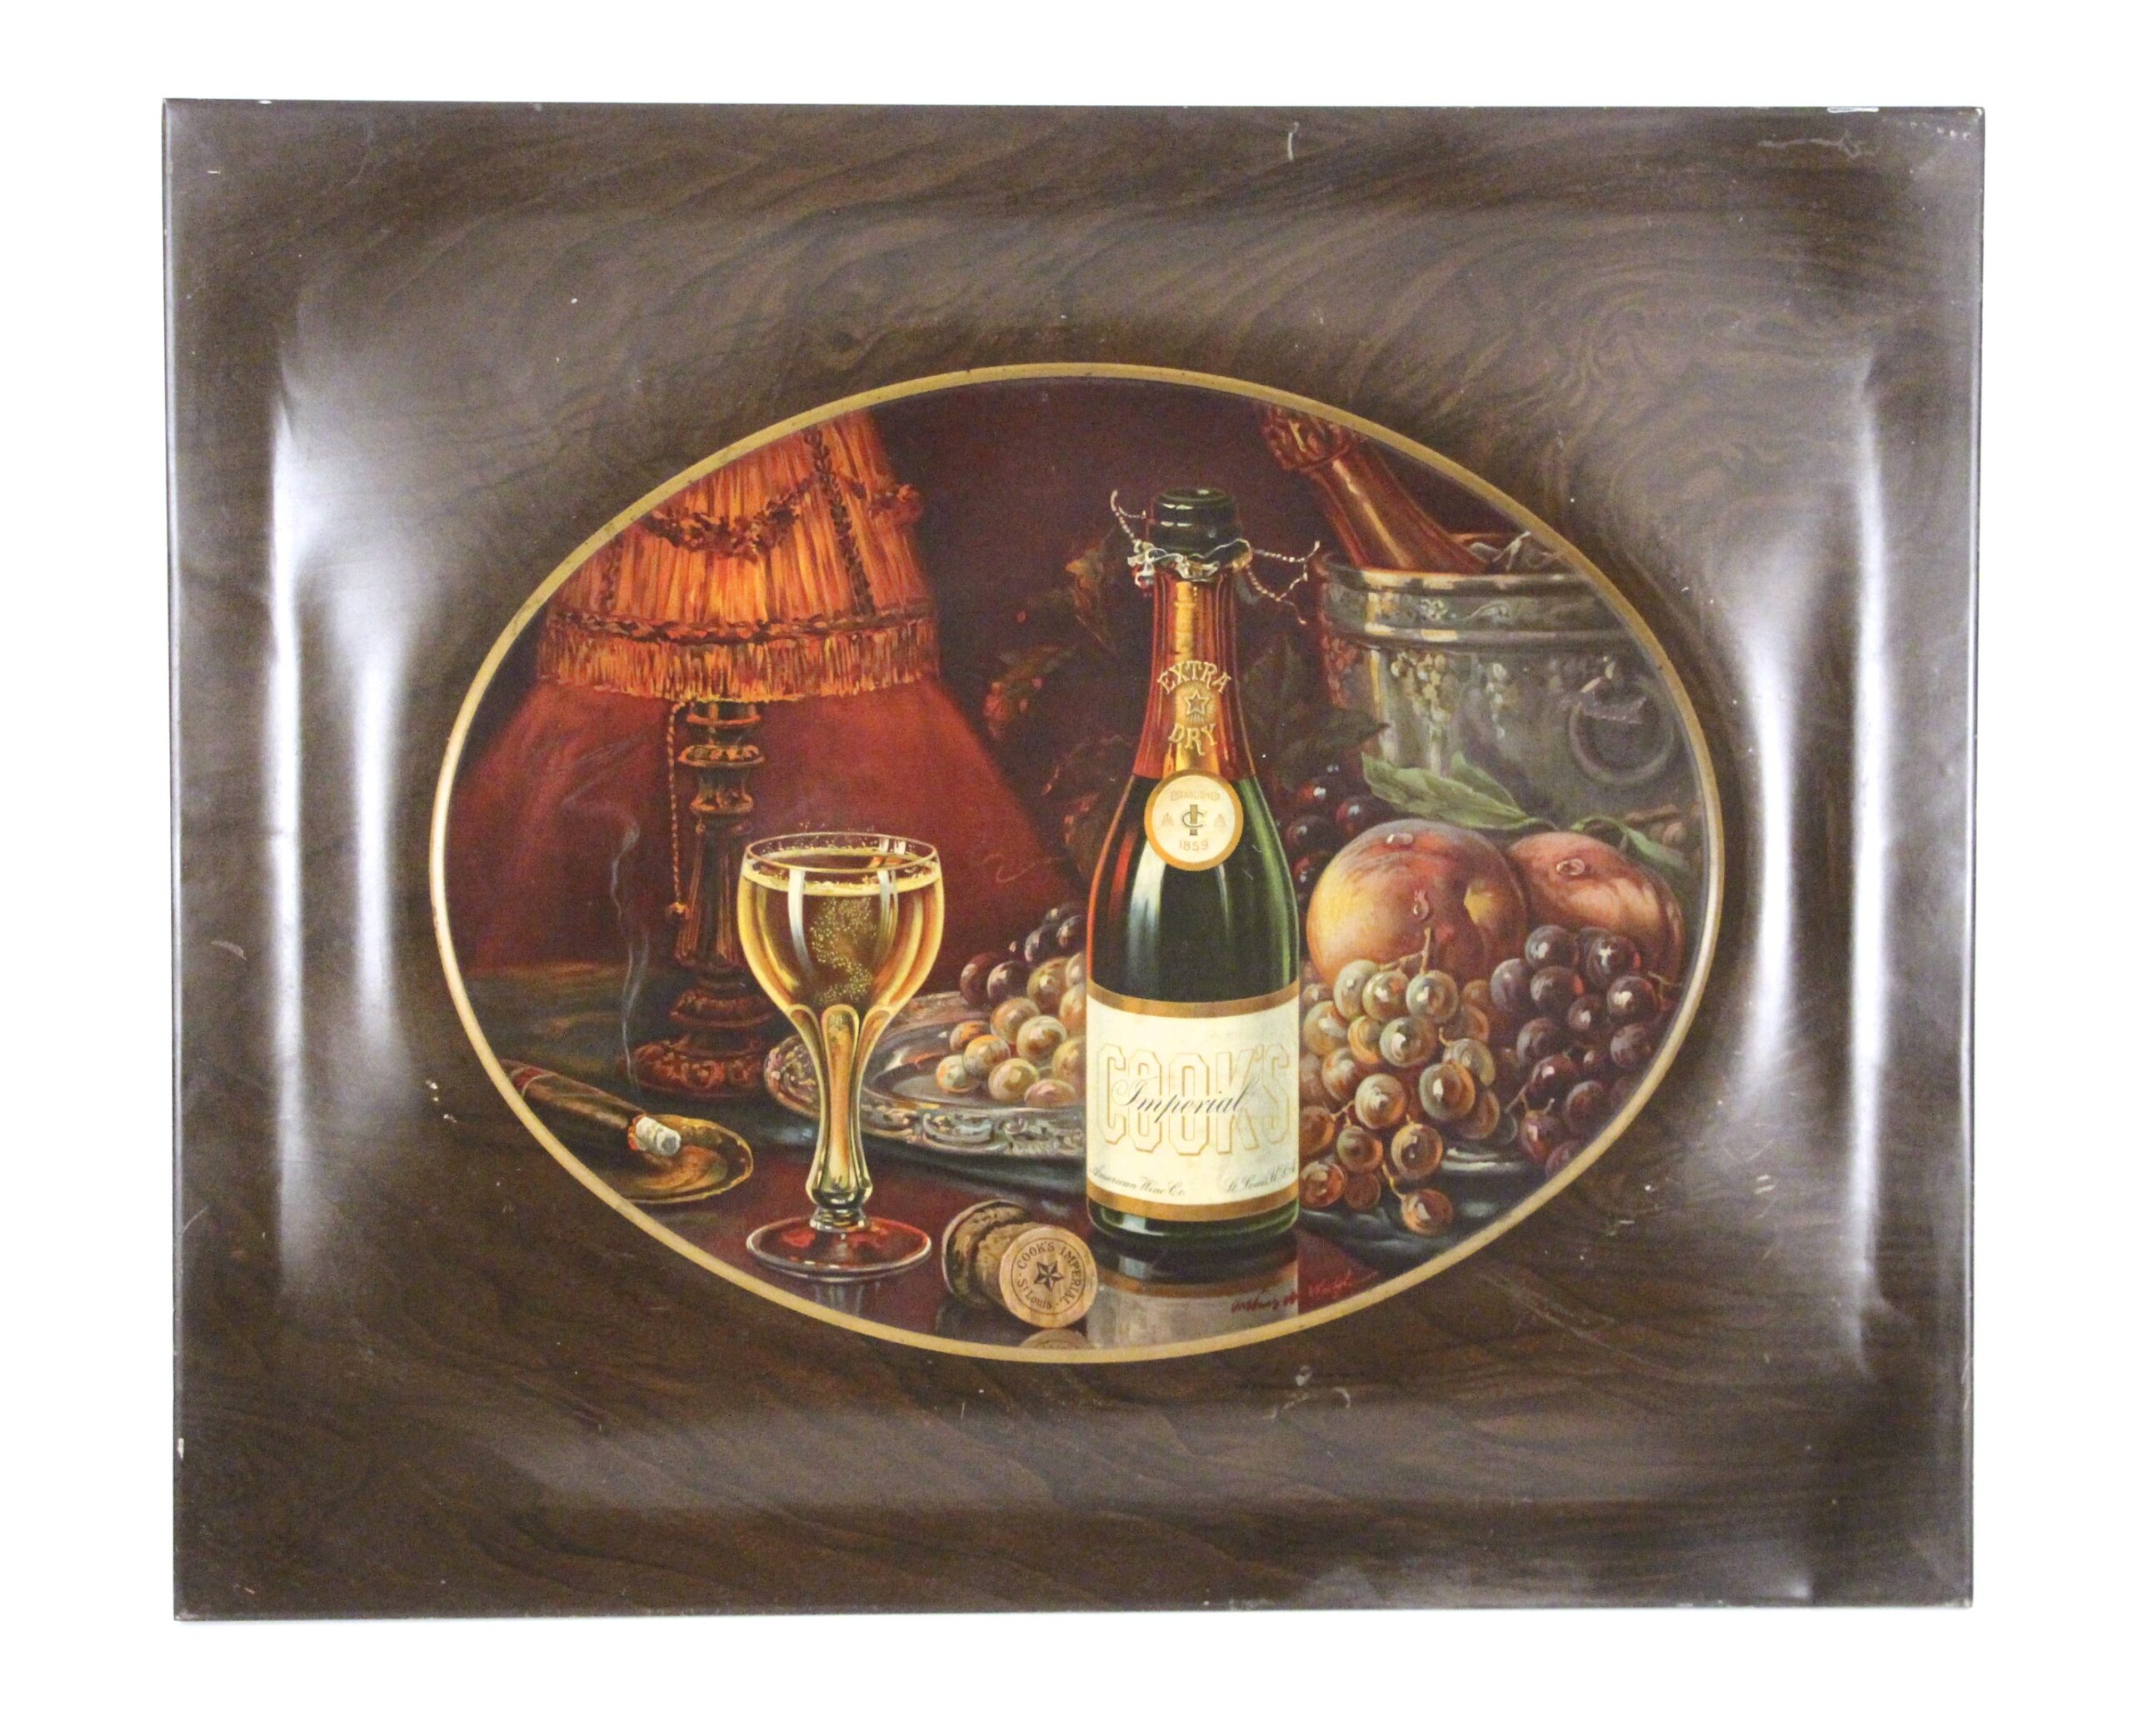 Cook's Champagne Slef Framed Tin Sign, St. Louis, MO. Circa 1900